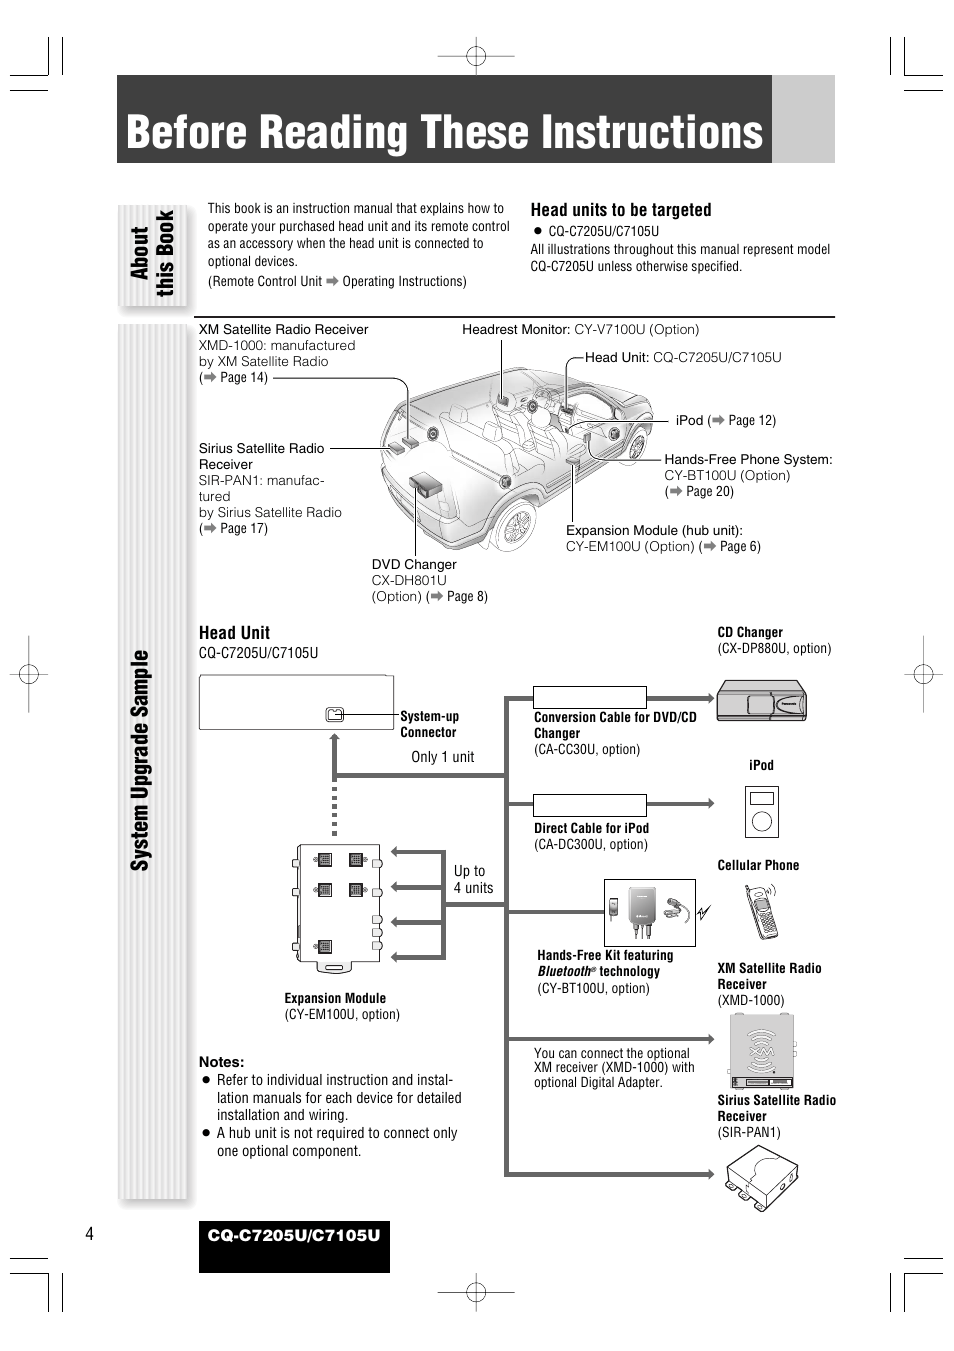 medium resolution of panasonic cq c7105u wiring diagram schema diagram databasebefore reading these instructions about this book